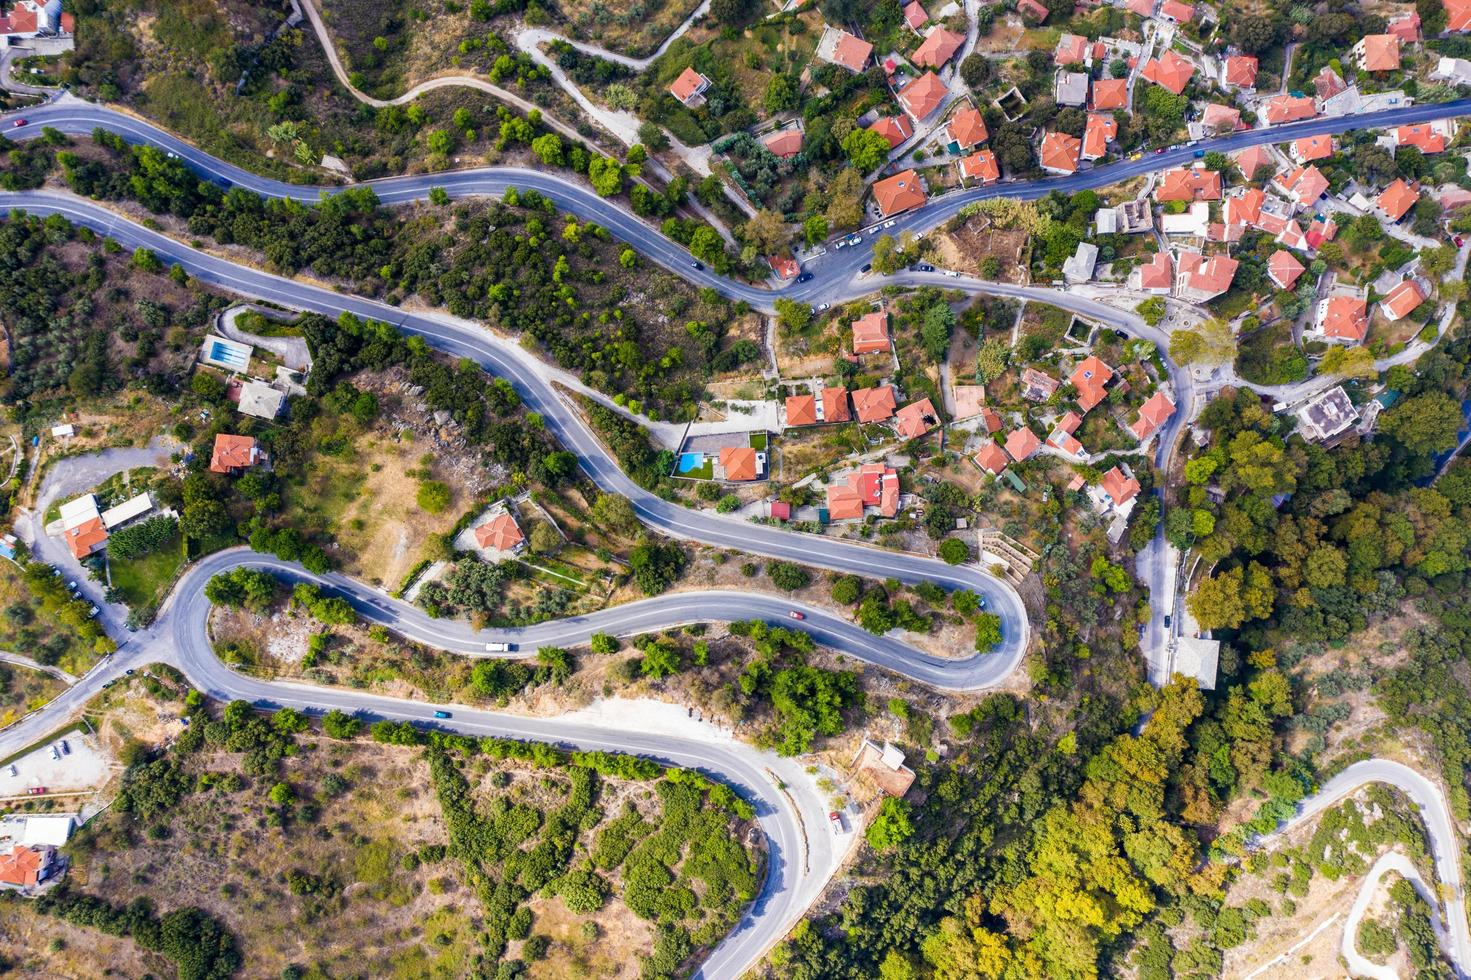 Aerial view of windy roads in a city photo